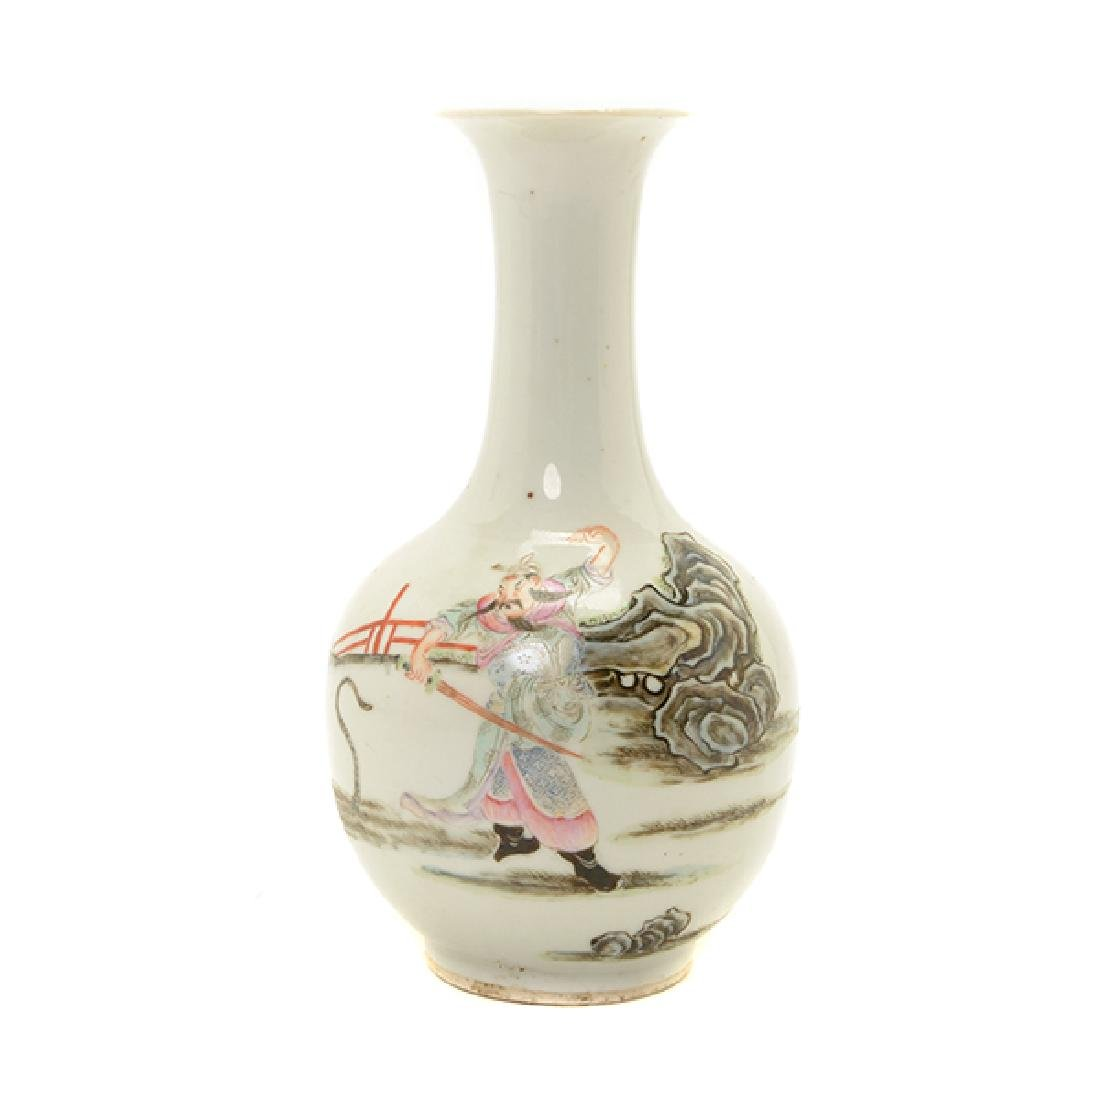 A Polychrome Enameled Porcelain Vase, Late 19th/Early